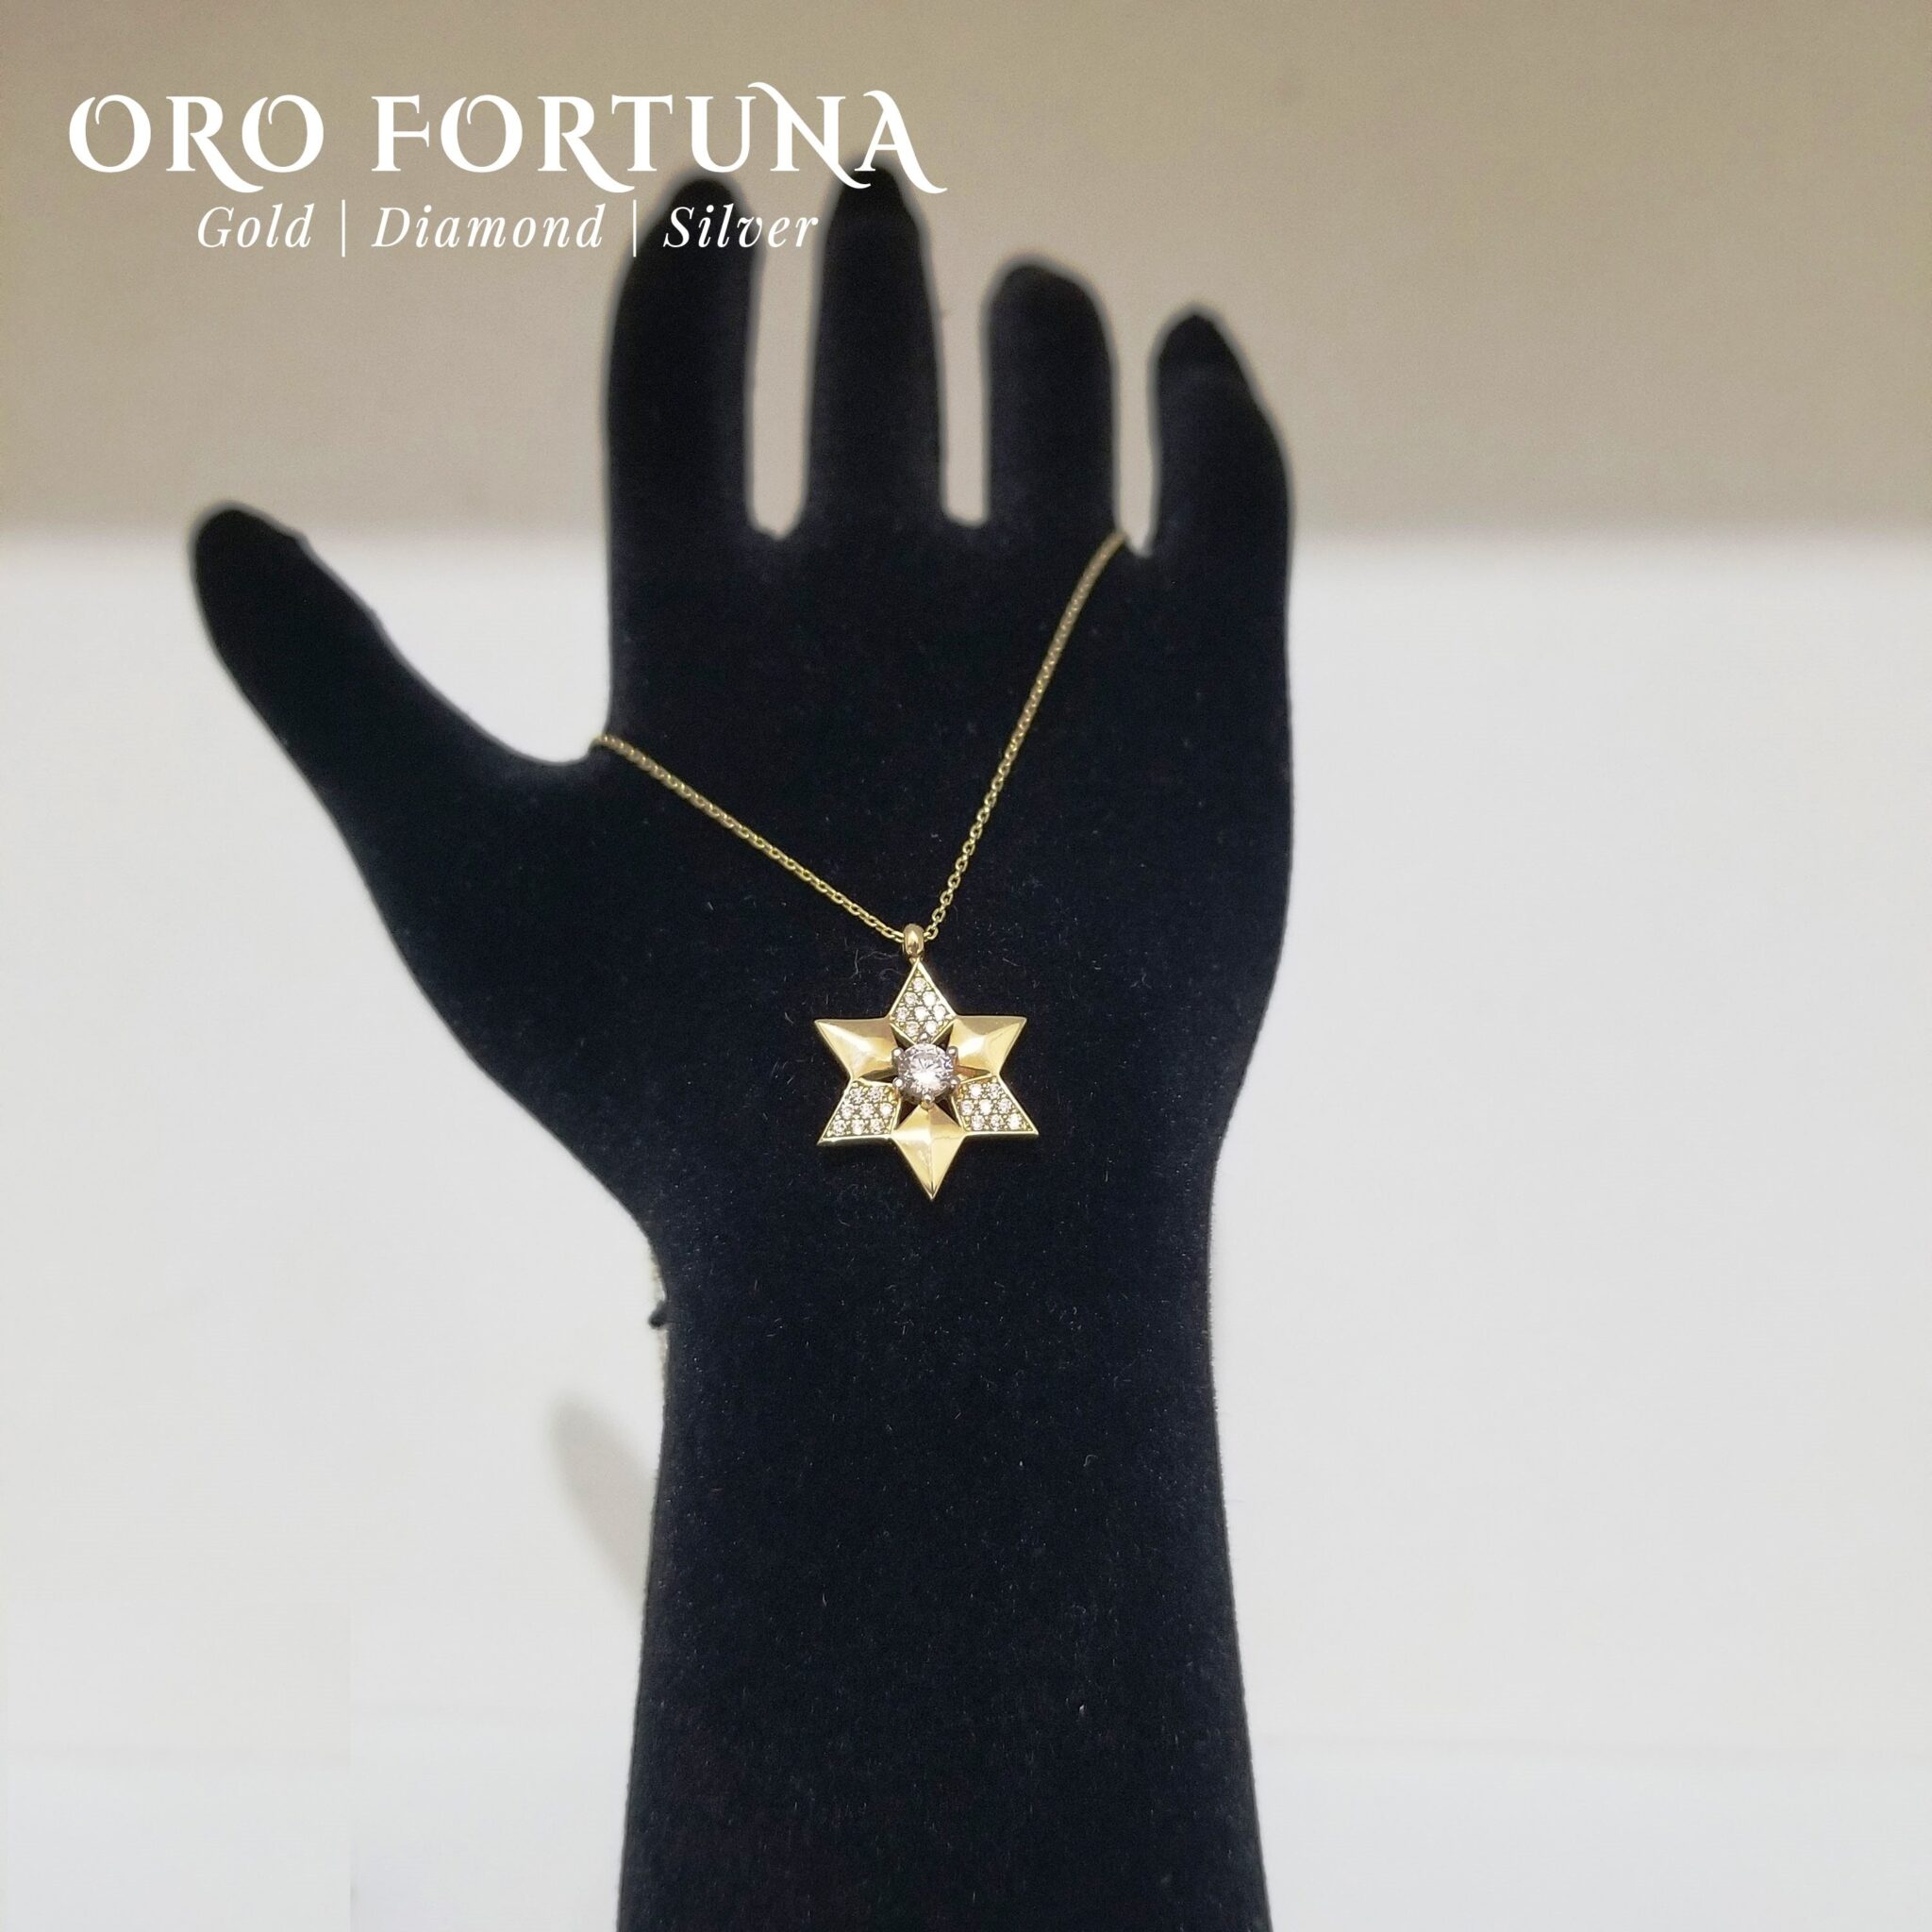 14K Yellow Gold Star of David Necklace Women Gift for Each Fine Fashion Trendy Minimalistic Dainty Fashionable